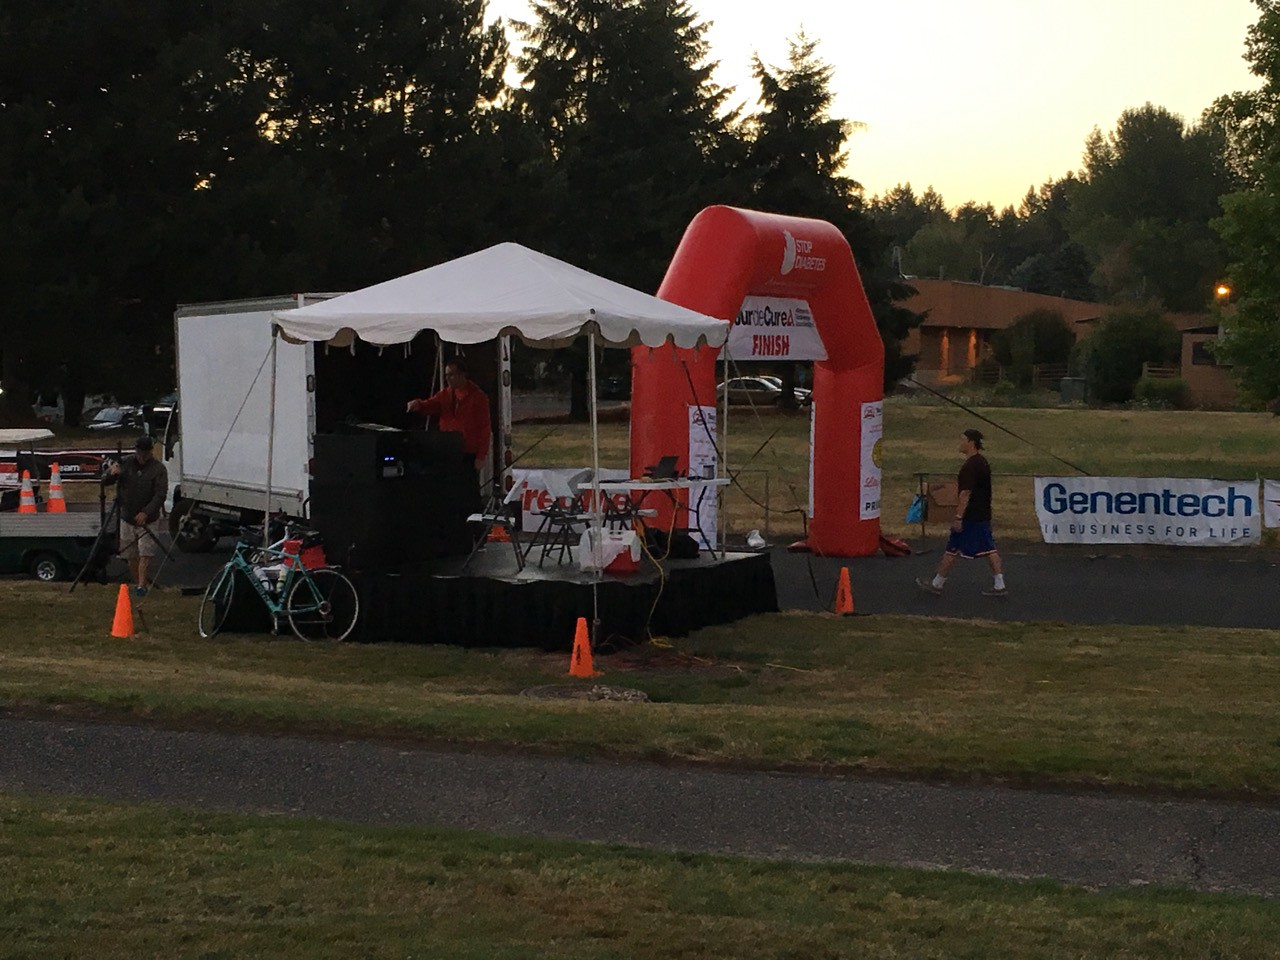 2016 Tour de Cure Oregon. Pre-ride for the century course.